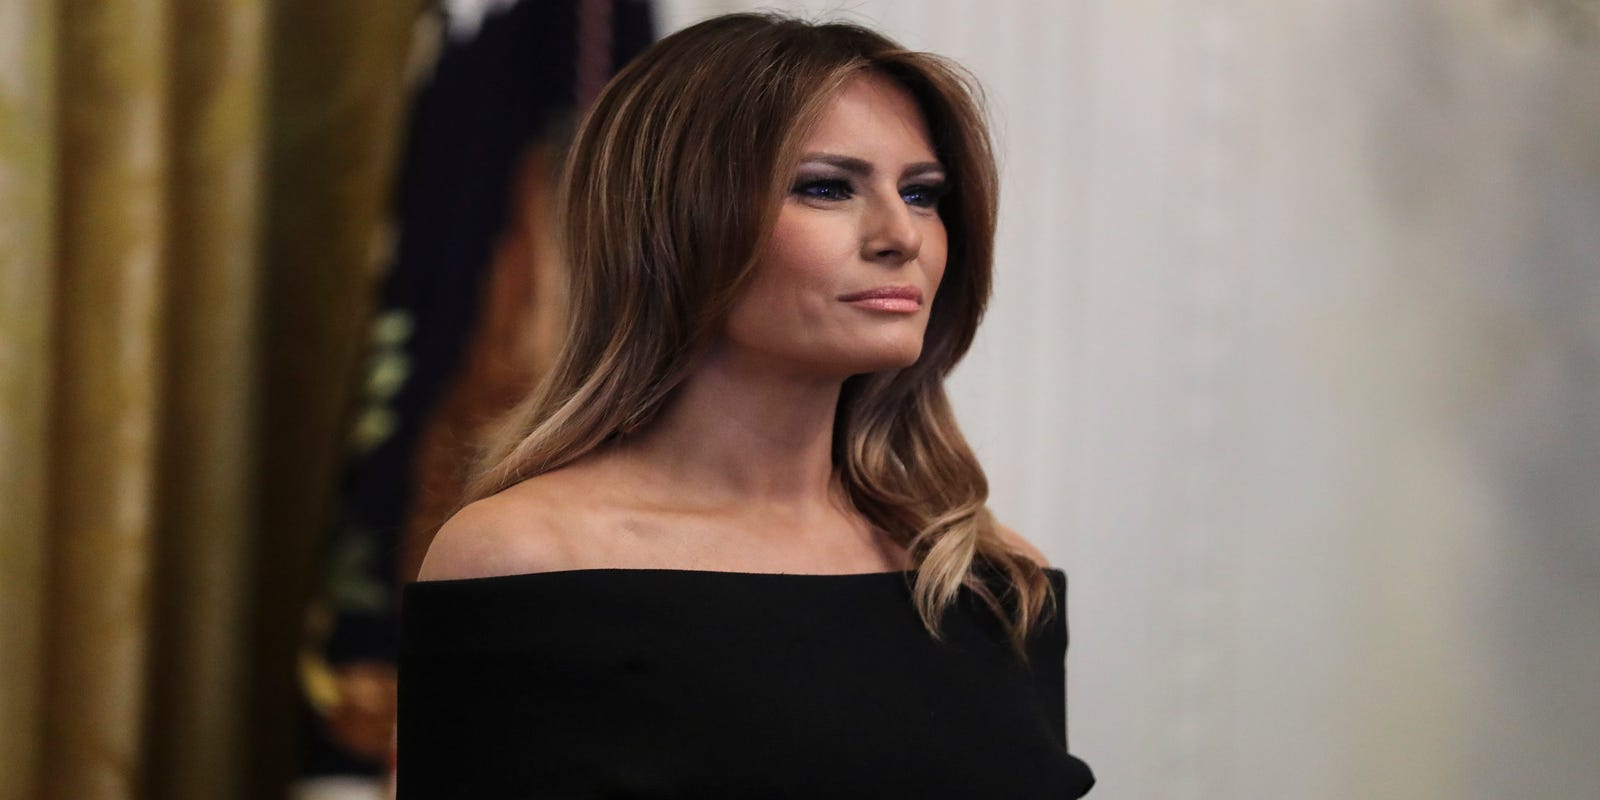 e91f0e9db08 Melania Trump rings in 2019 with a sparkly New Year s selfie